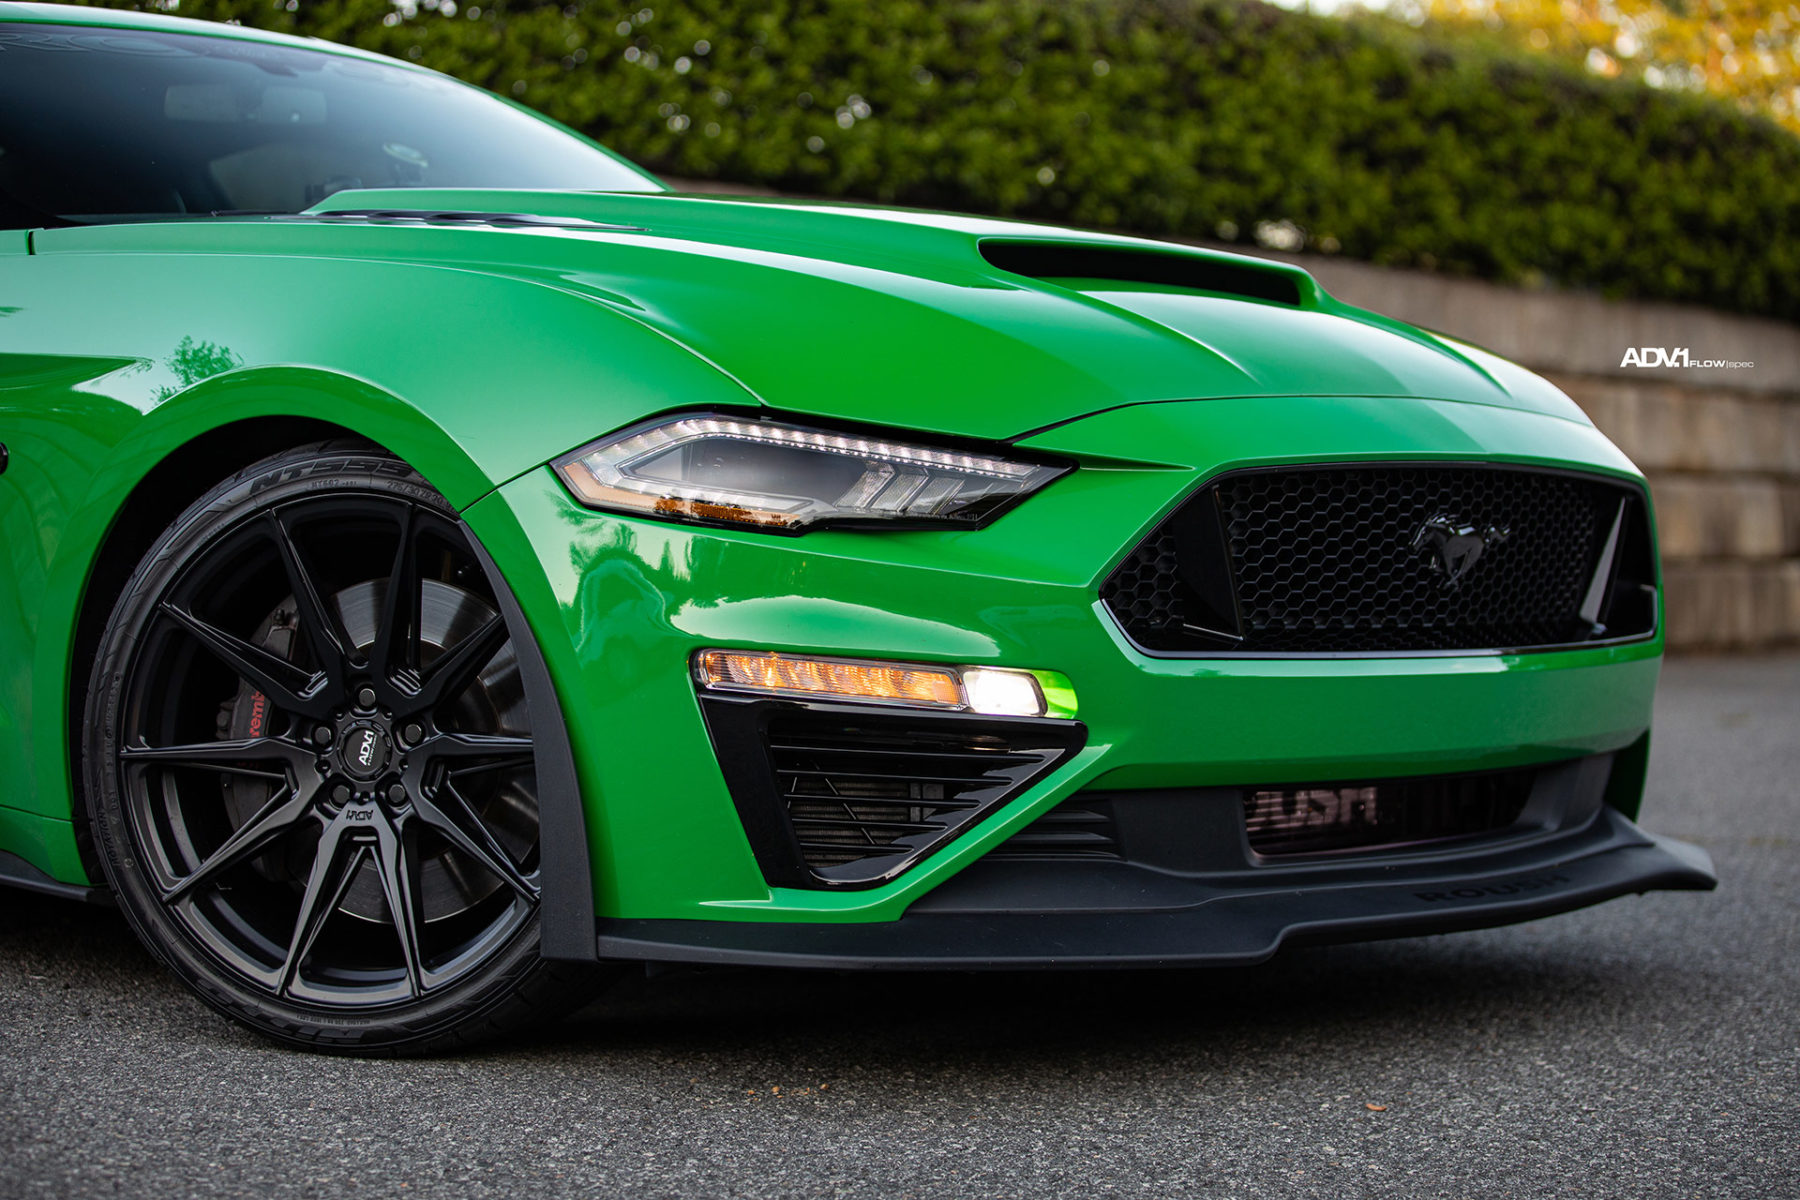 Green Roush Supercharged Ford Mustang GT - ADV5.0 FLOWspec Wheels in Satin Black